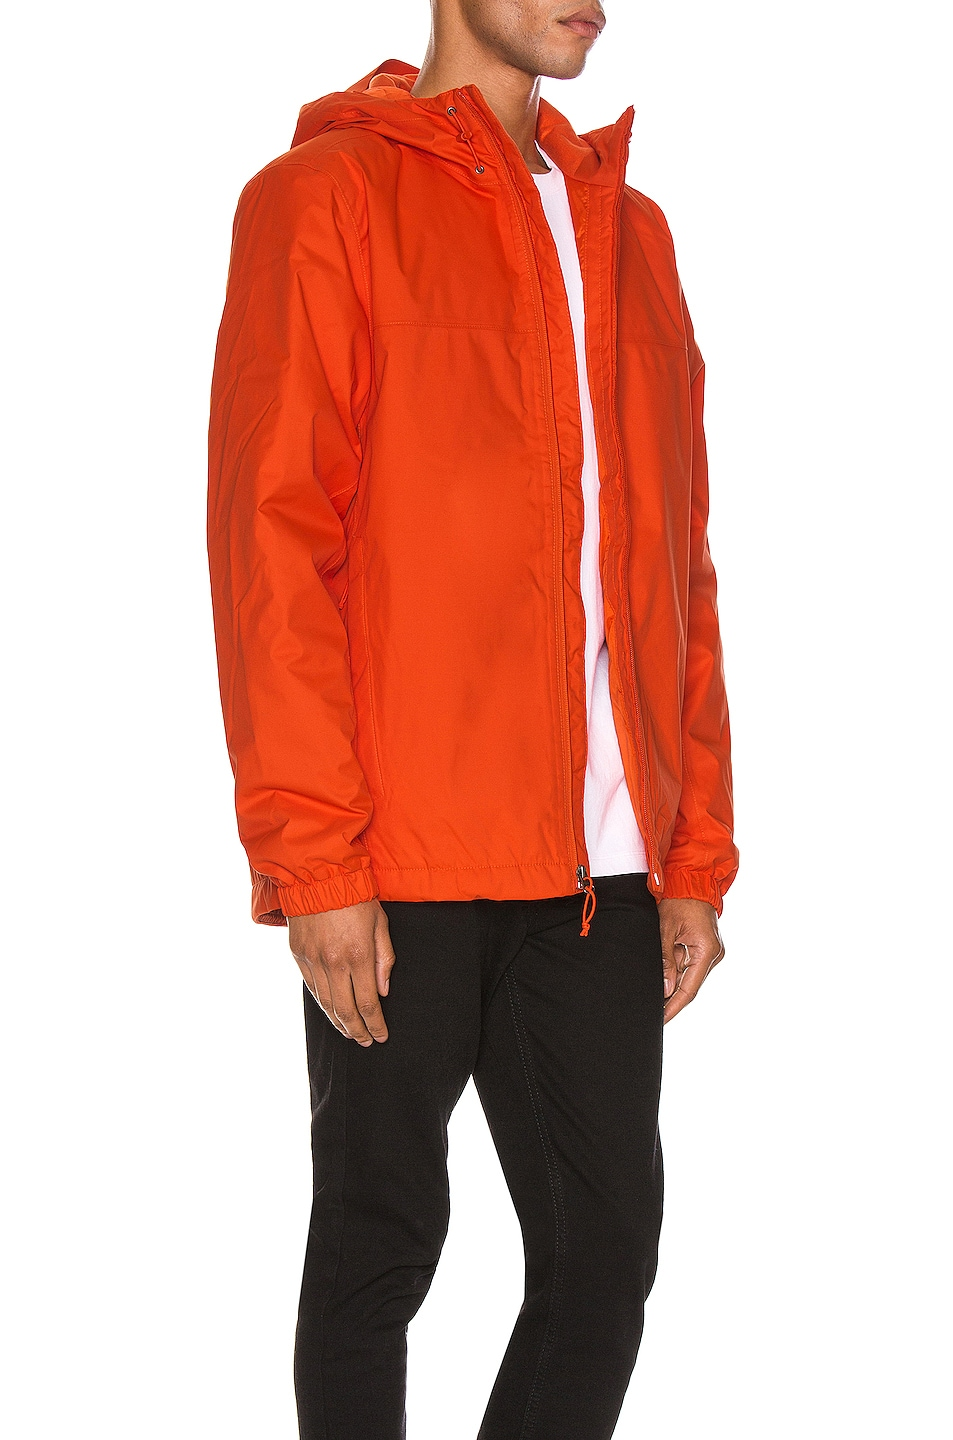 Image 4 of The North Face Black Box Ins Mountain Q Jacket in Tangerine Tango